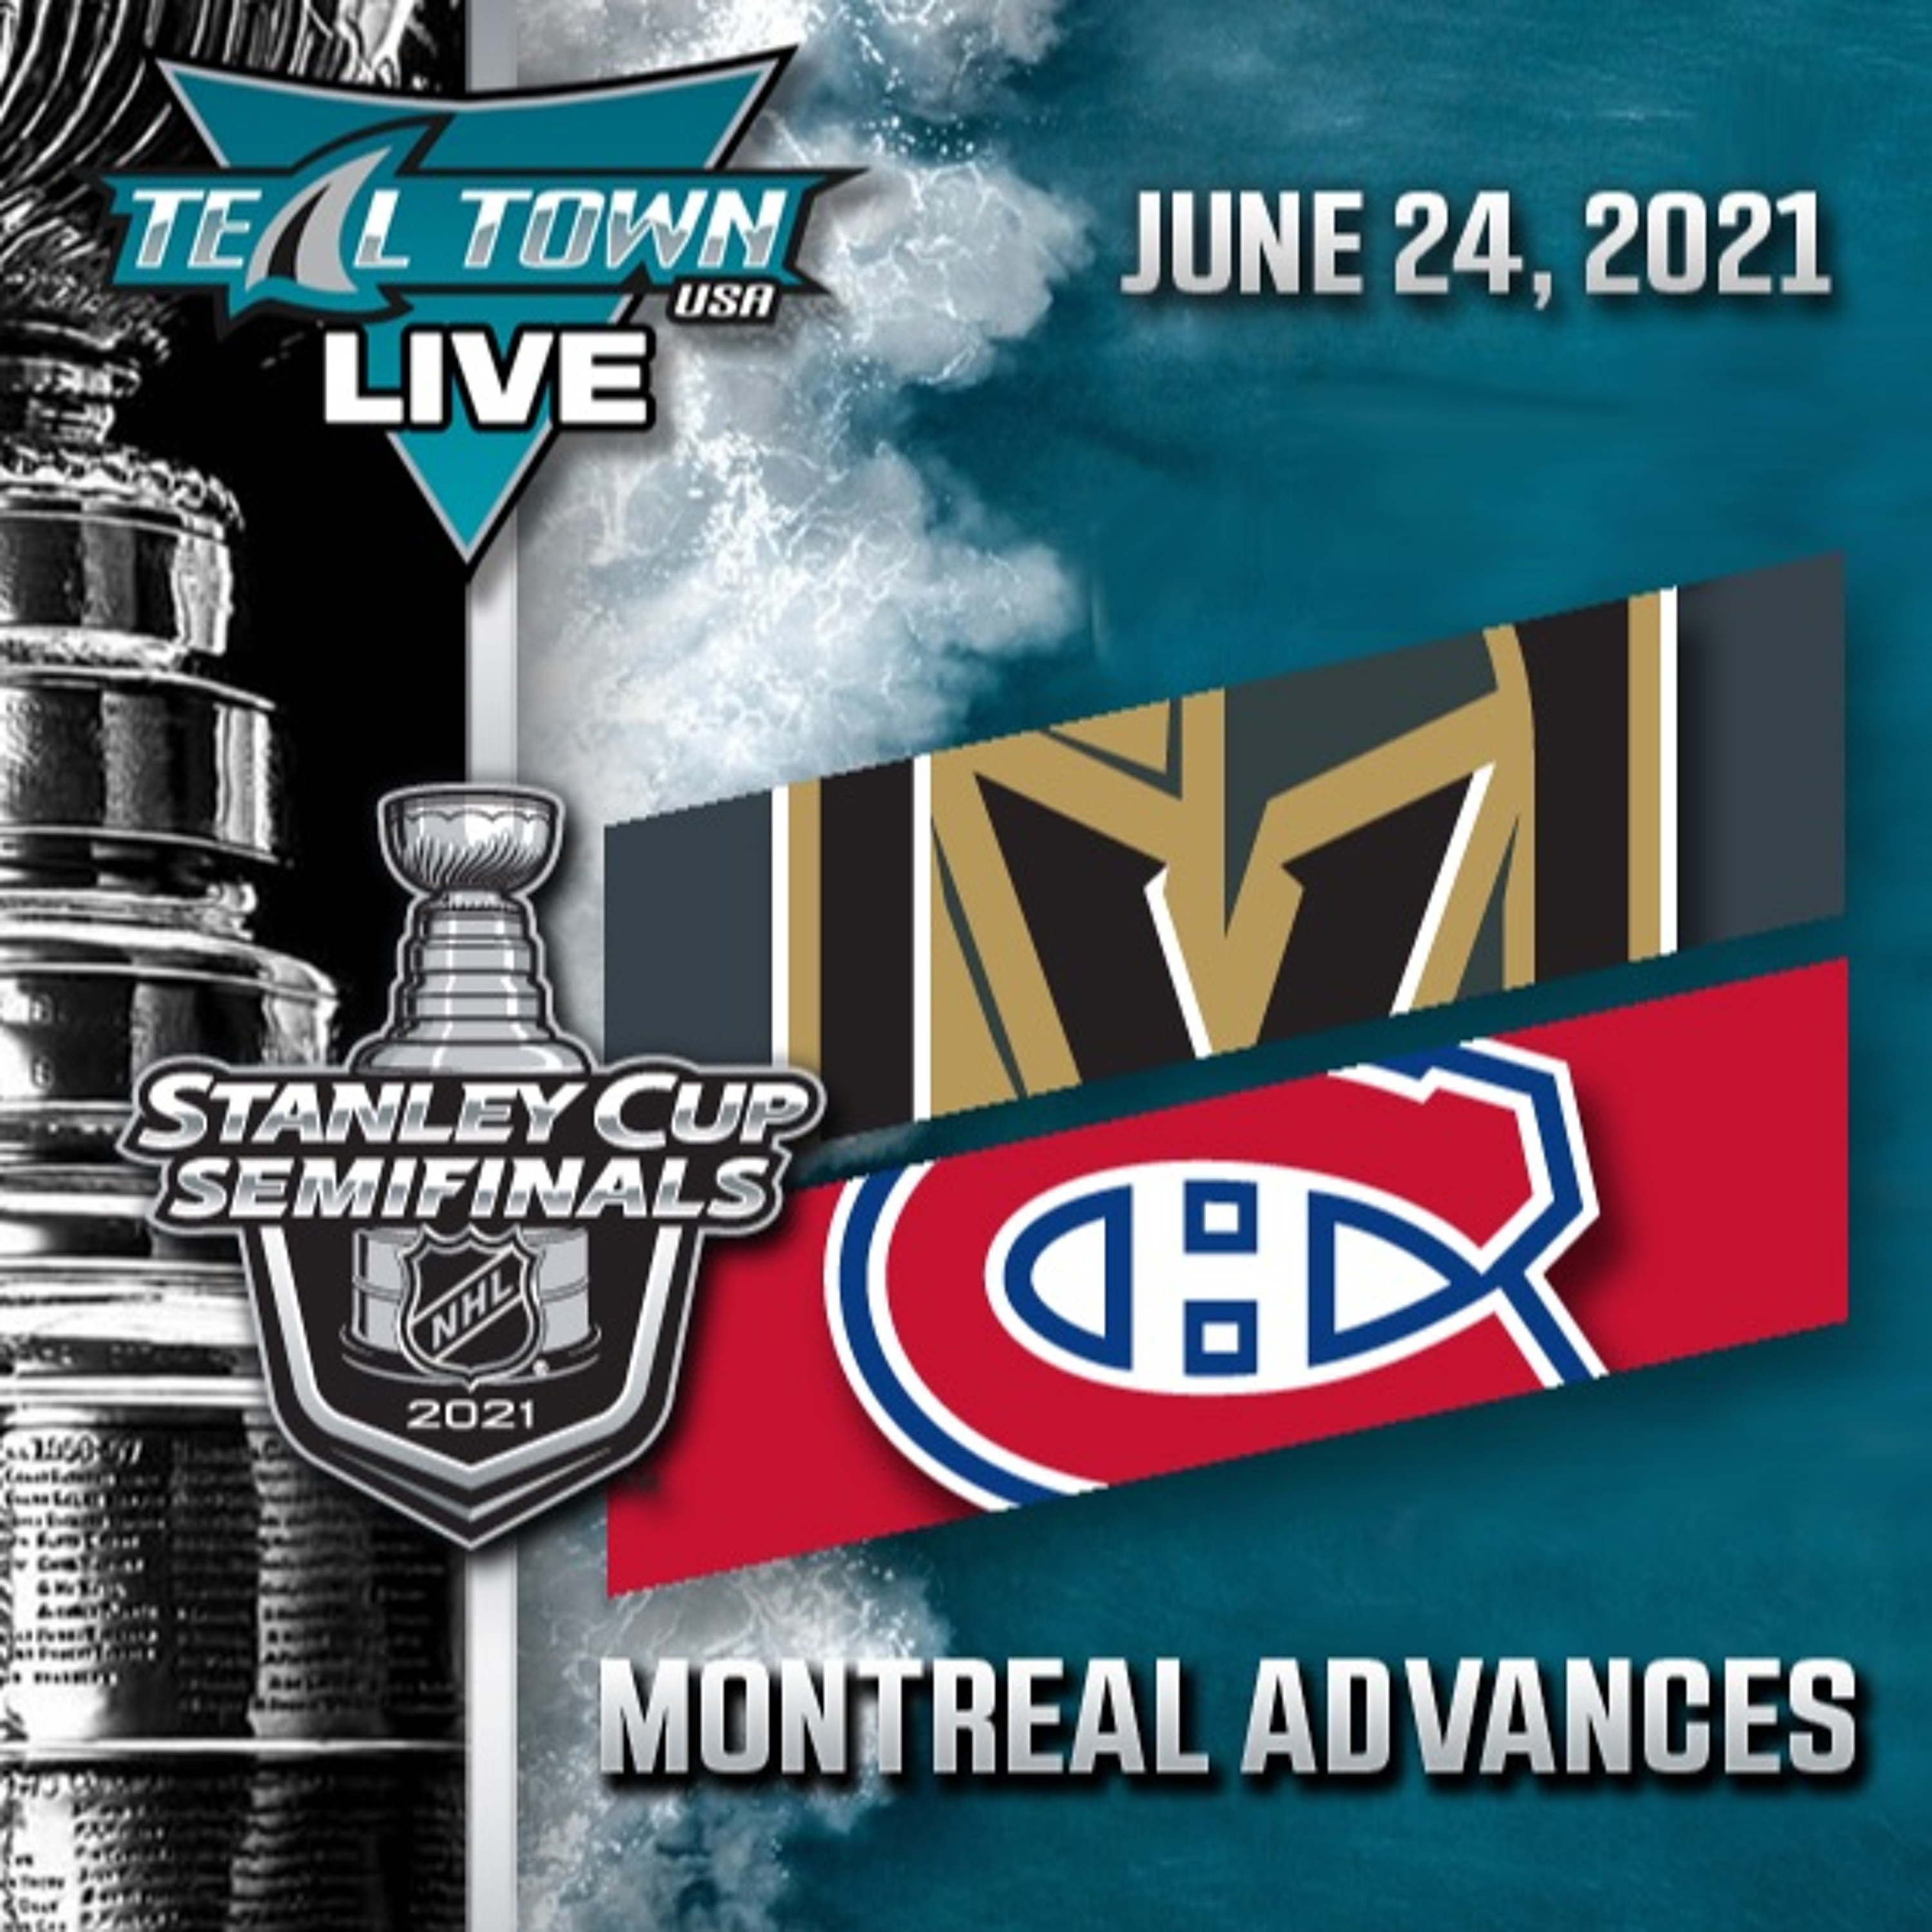 Montreal Advances To Stanley Cup Final - 6-24-2021 - Teal Town USA Live